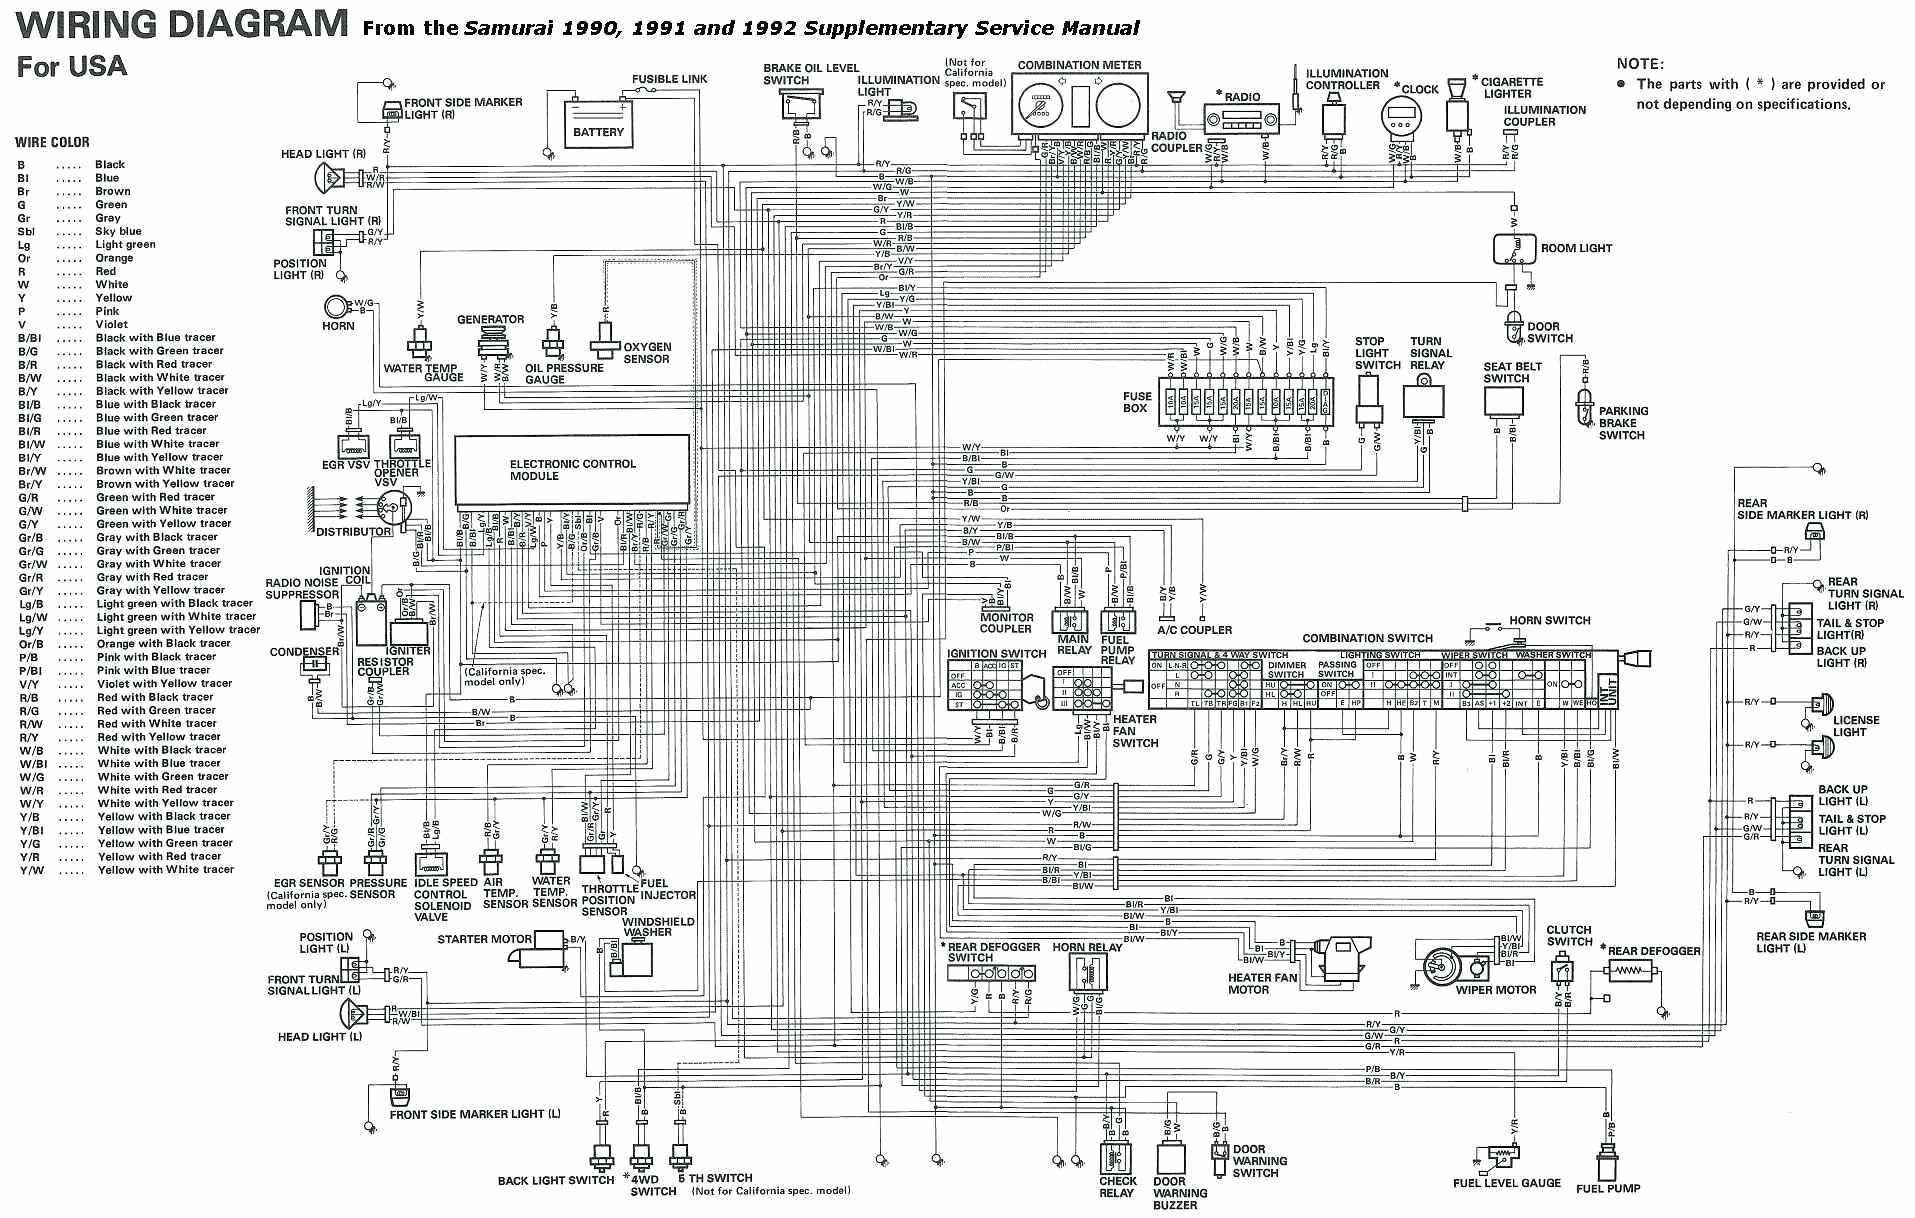 wiring diagram daihatsu jb wiring diagram splitdaihatsu l9 wiring diagram wiring diagrams second wiring diagram daihatsu [ 1915 x 1218 Pixel ]